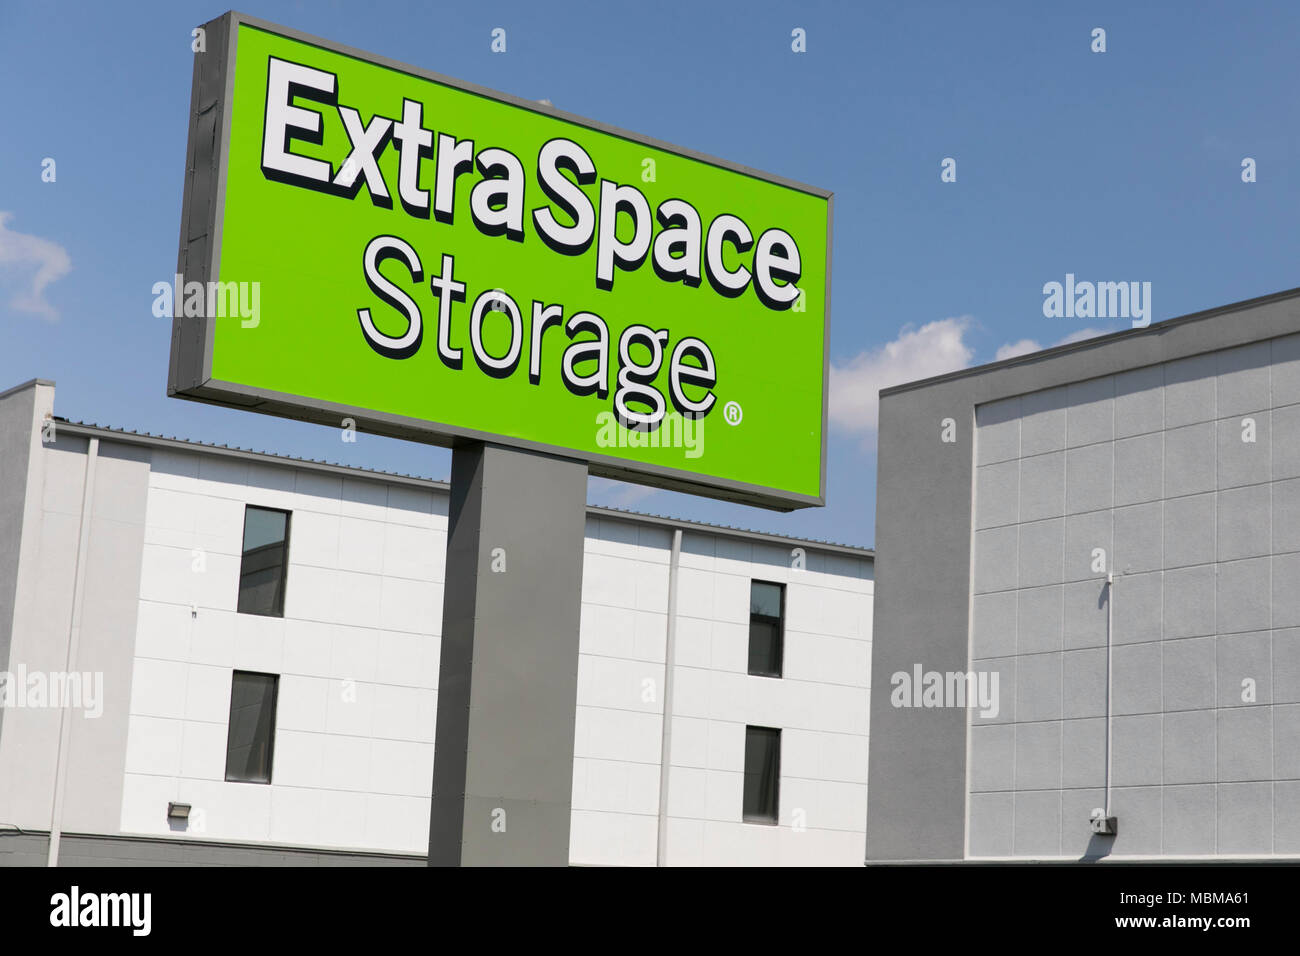 A logo sign outside of a Extra Space Storage location in Wheaton, Maryland on April 10, 2018. - Stock Image